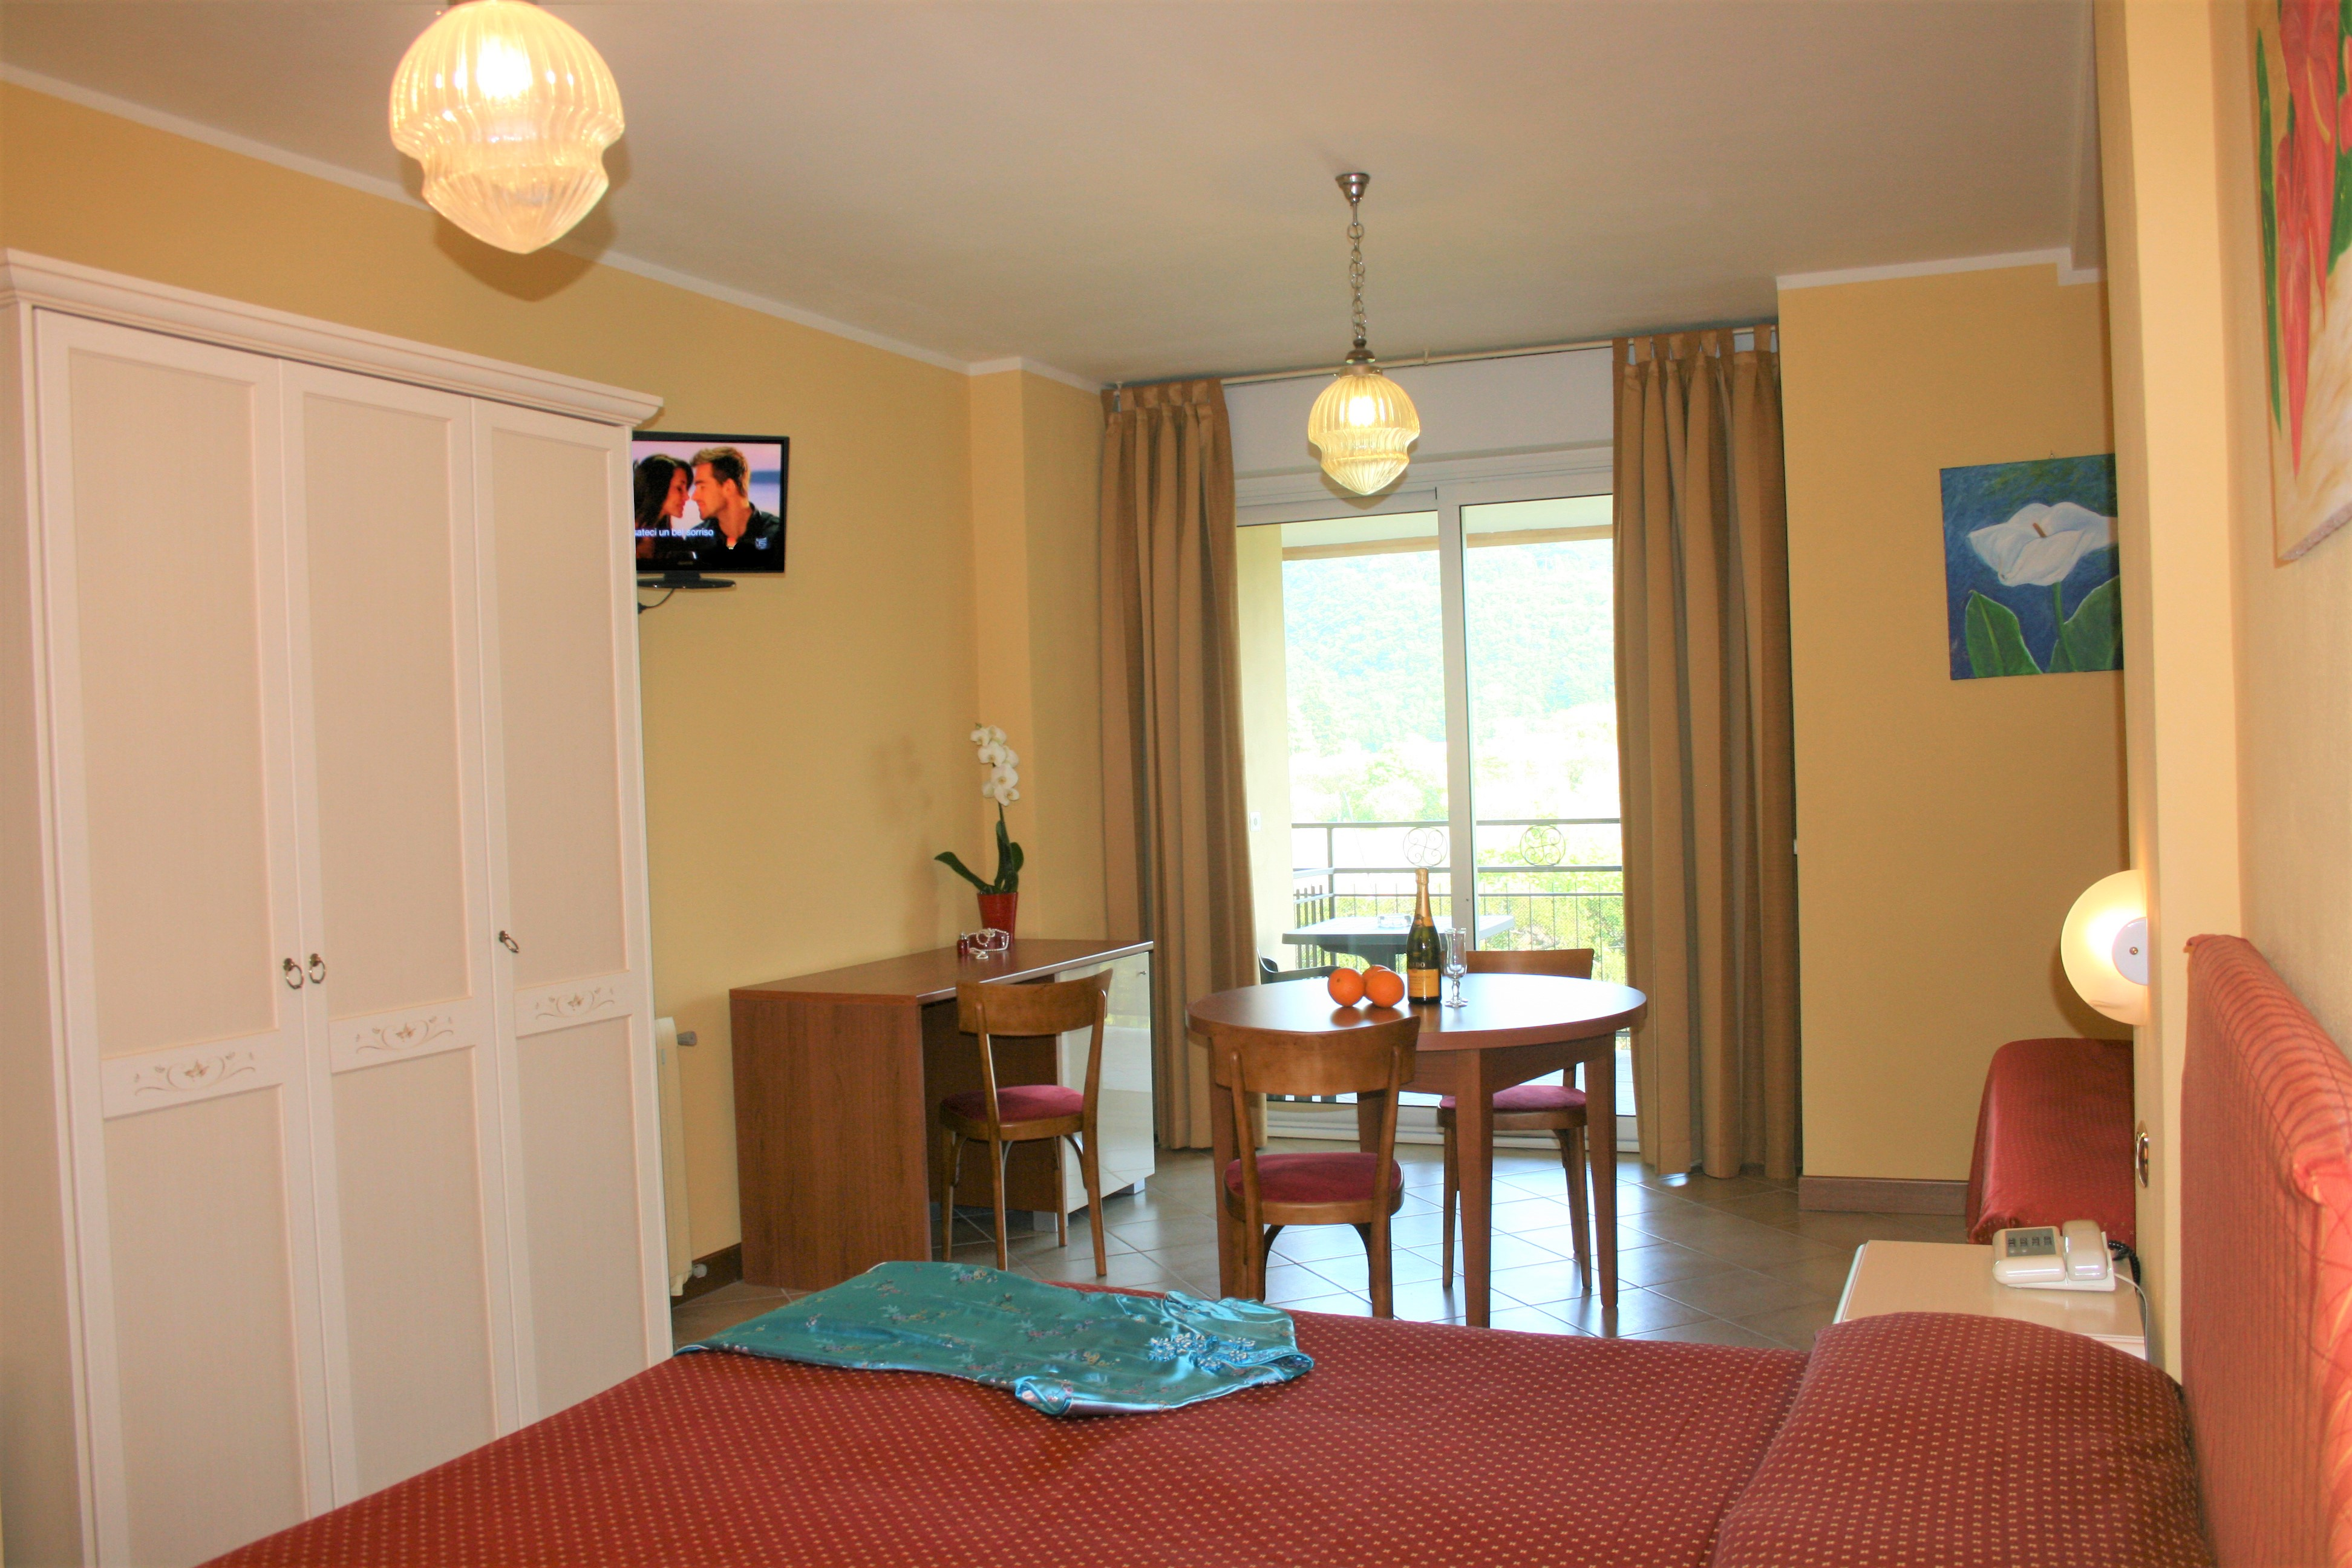 Superior Room in Manerba A holiday near the Gulf of Garda where you can save money without sacrificing luxury